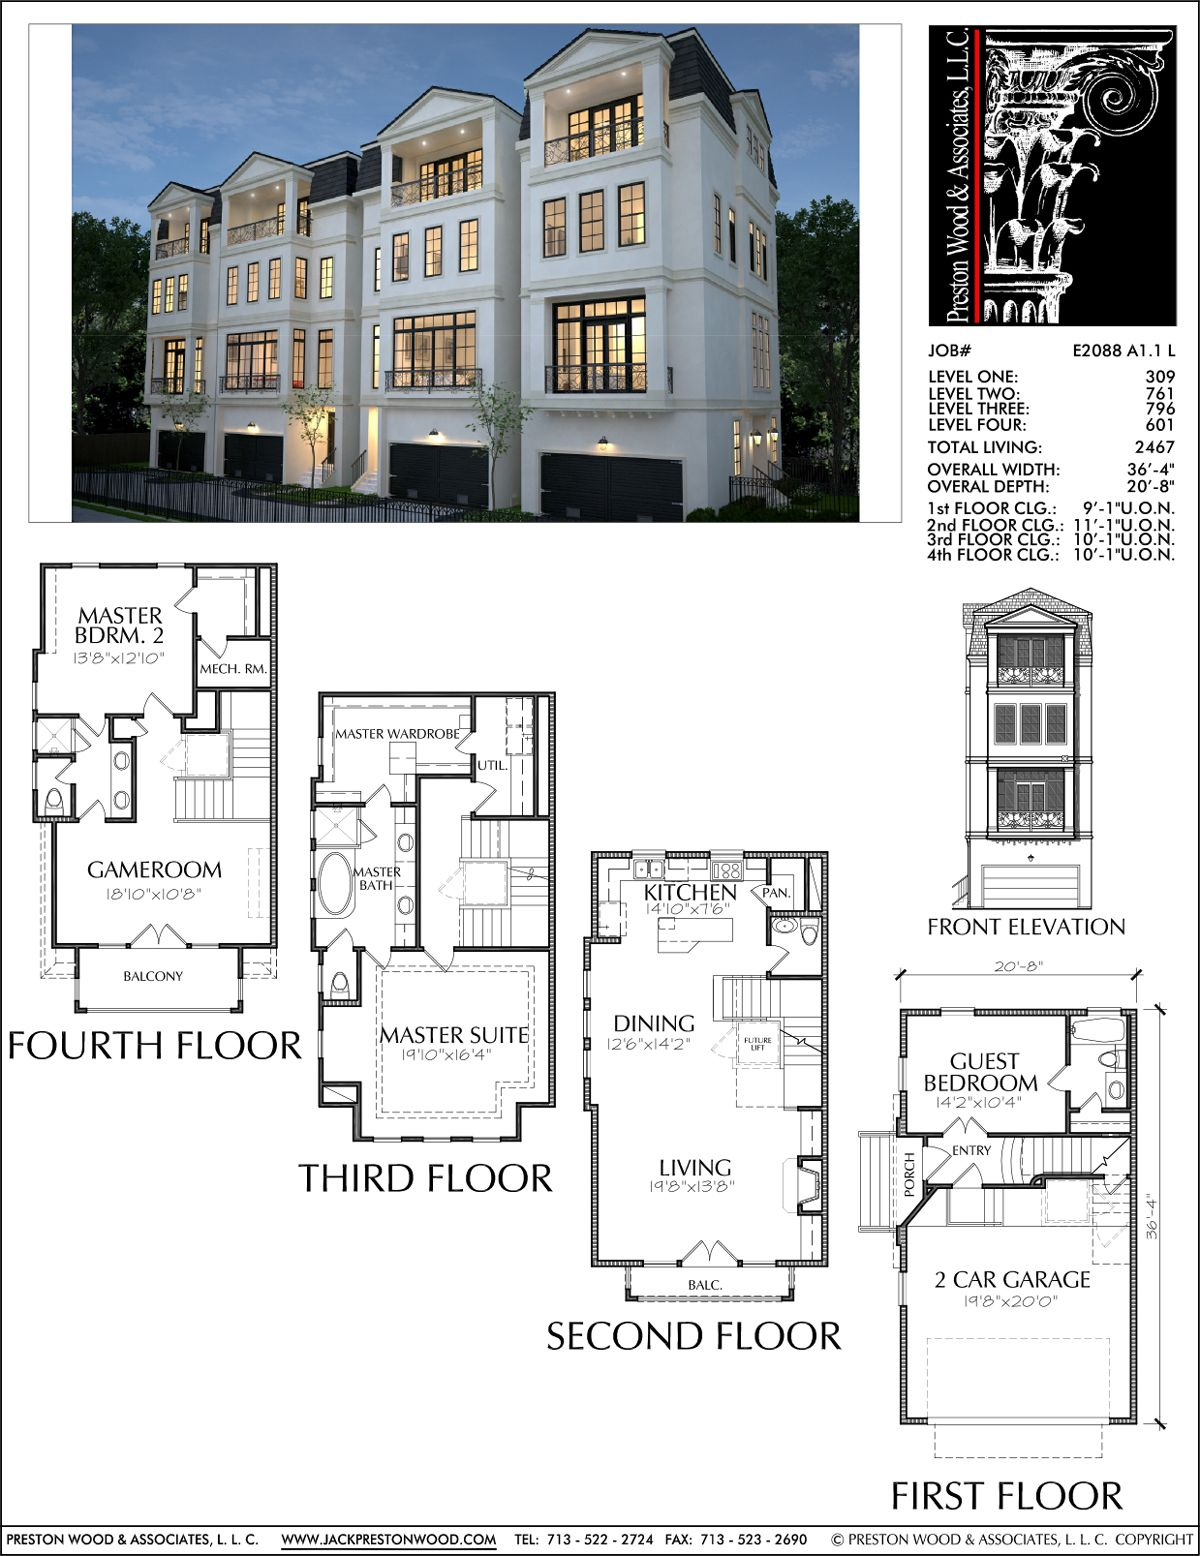 Townhouse Plan E2088 A1 1 Brownstone Homes House Floor Plans Townhouse Designs